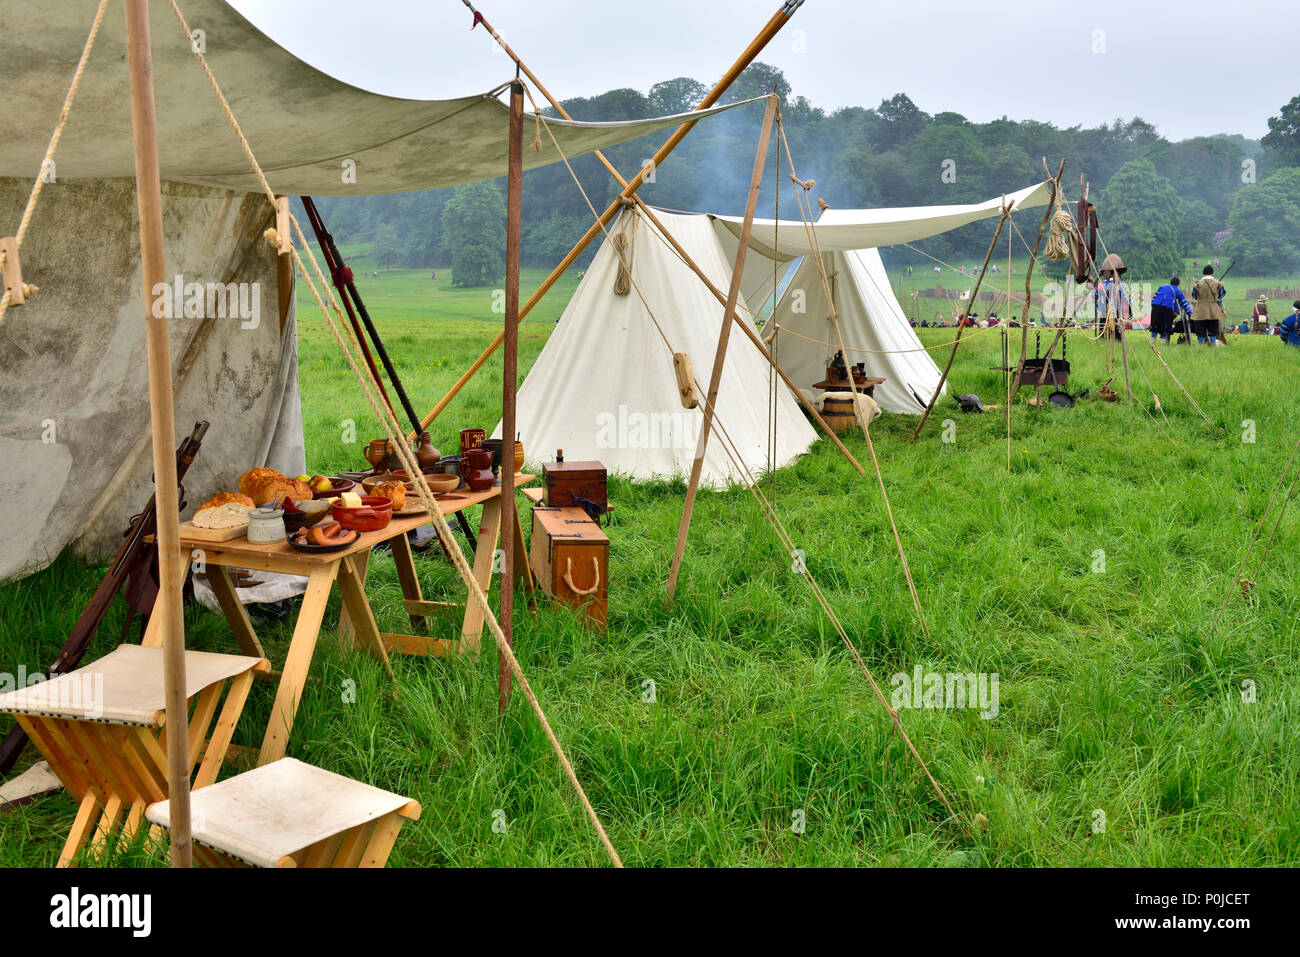 Tents and camping in living history of English Civil War